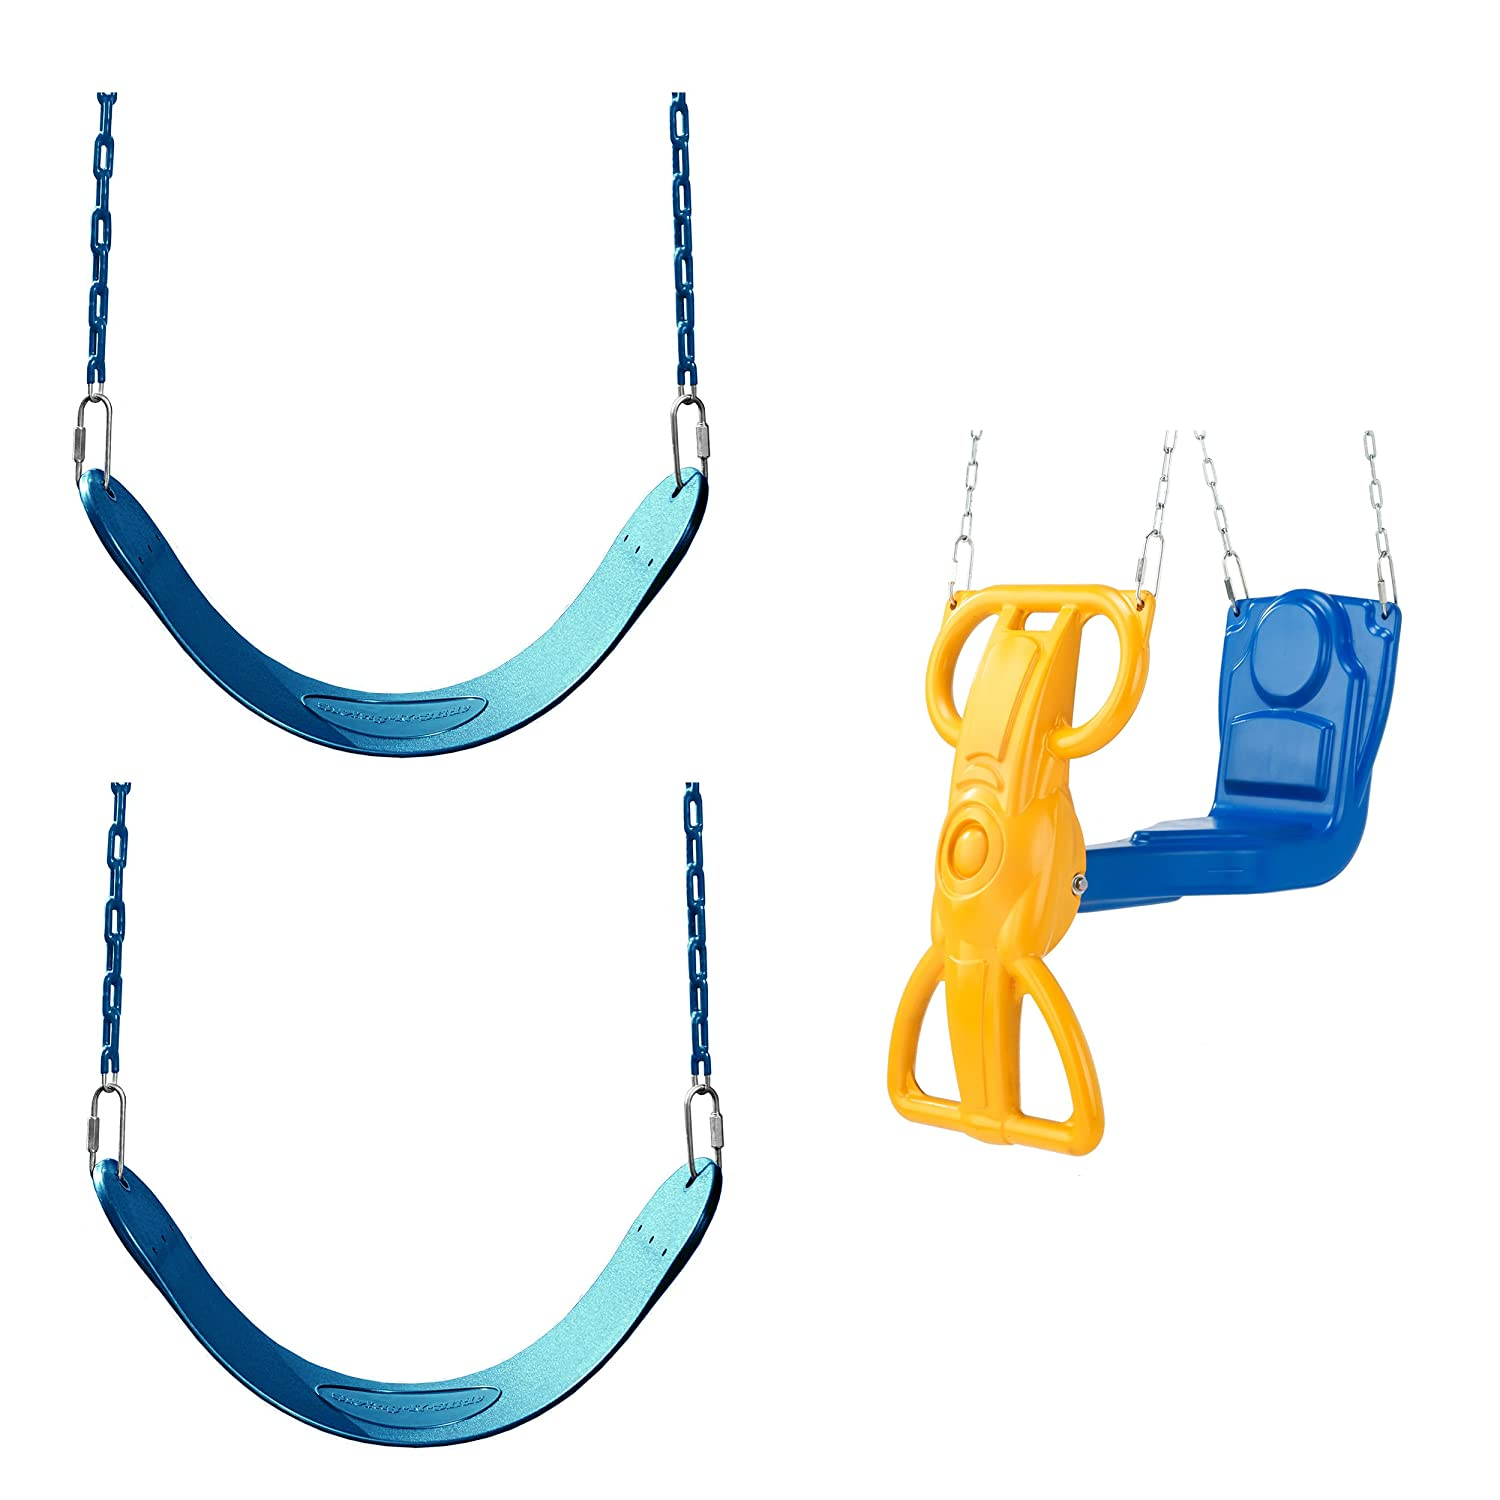 Blue Swing Seat and Glider Bundle - Includes 2 Blue Belted Swing Seats and a Blue and Wind Rider Glider Swing for Swing Sets, Play Sets, etc. Swing-N-Slide